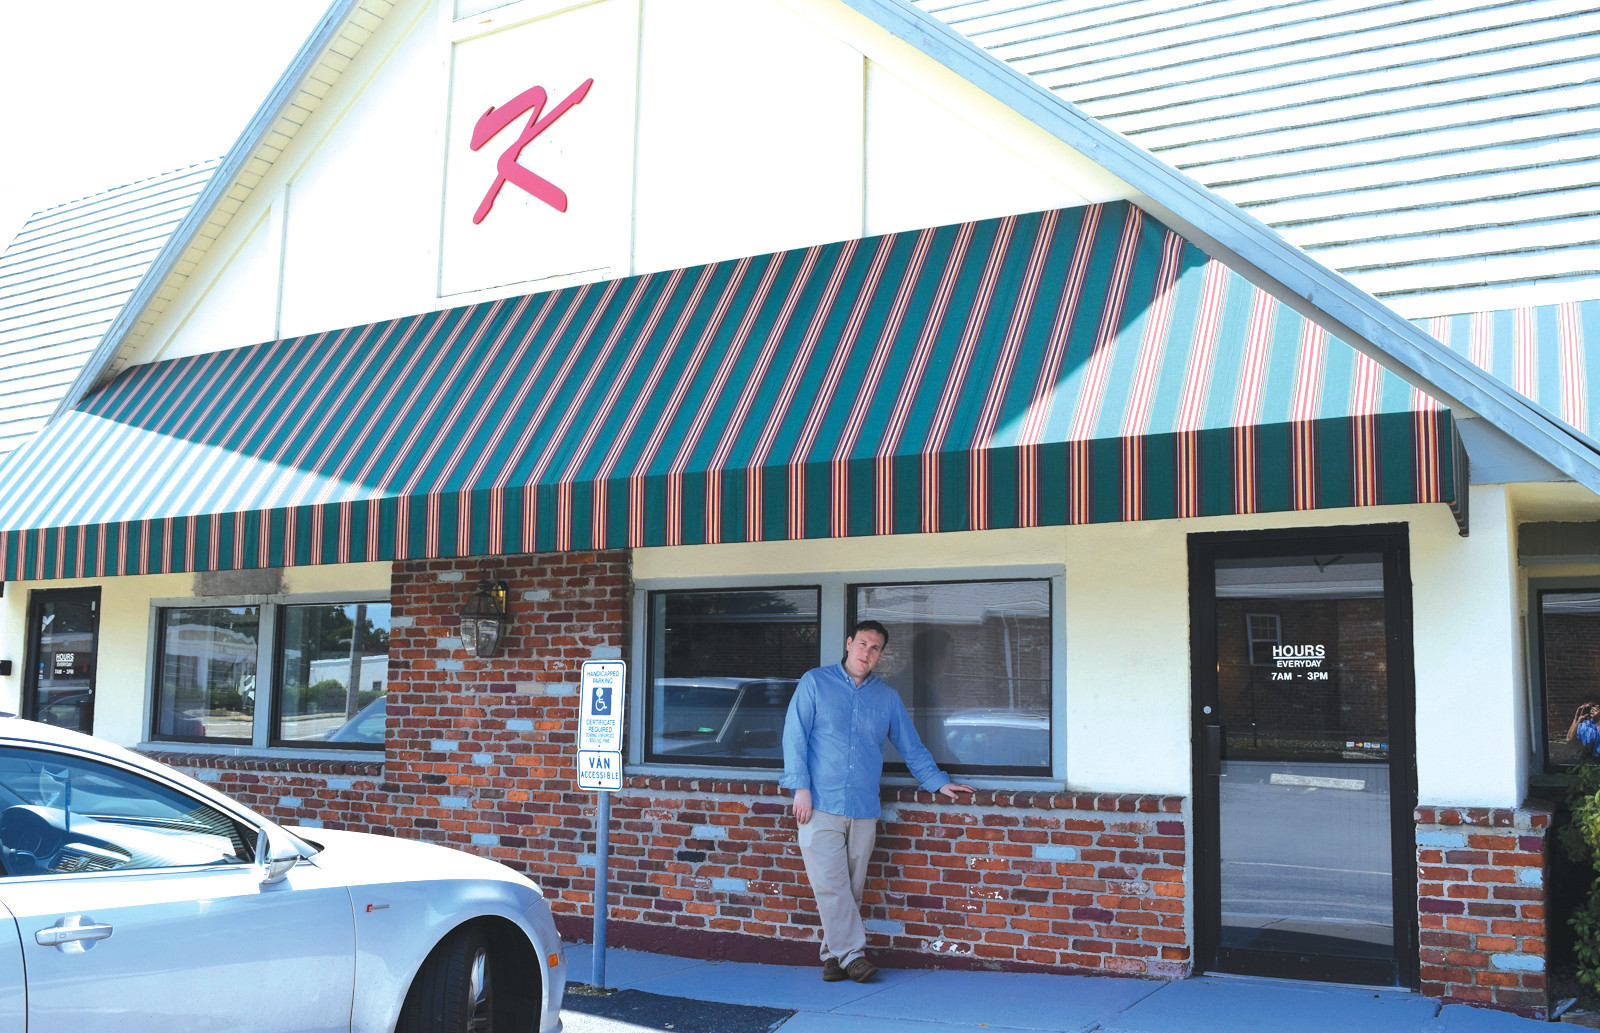 BACK IN BUSINESS: Above, Kenny DeMarco, Jr., leans outside of his establishment, Kenny's Place, which now sports a 'K' on the side of the building.